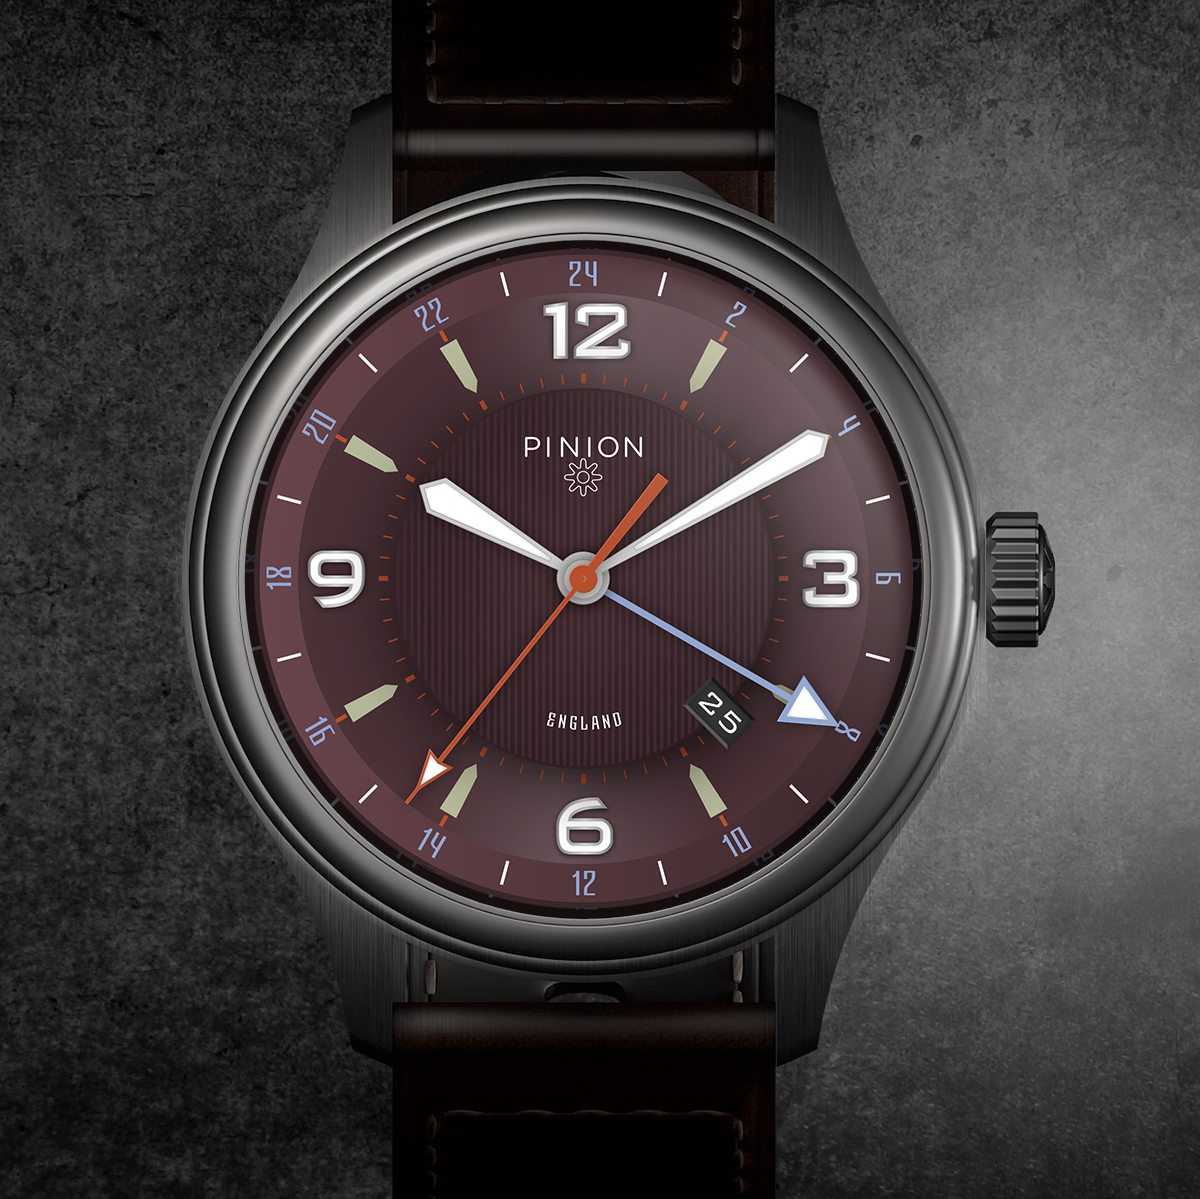 watch montredo watches company top magazine pinion en british bremont brands